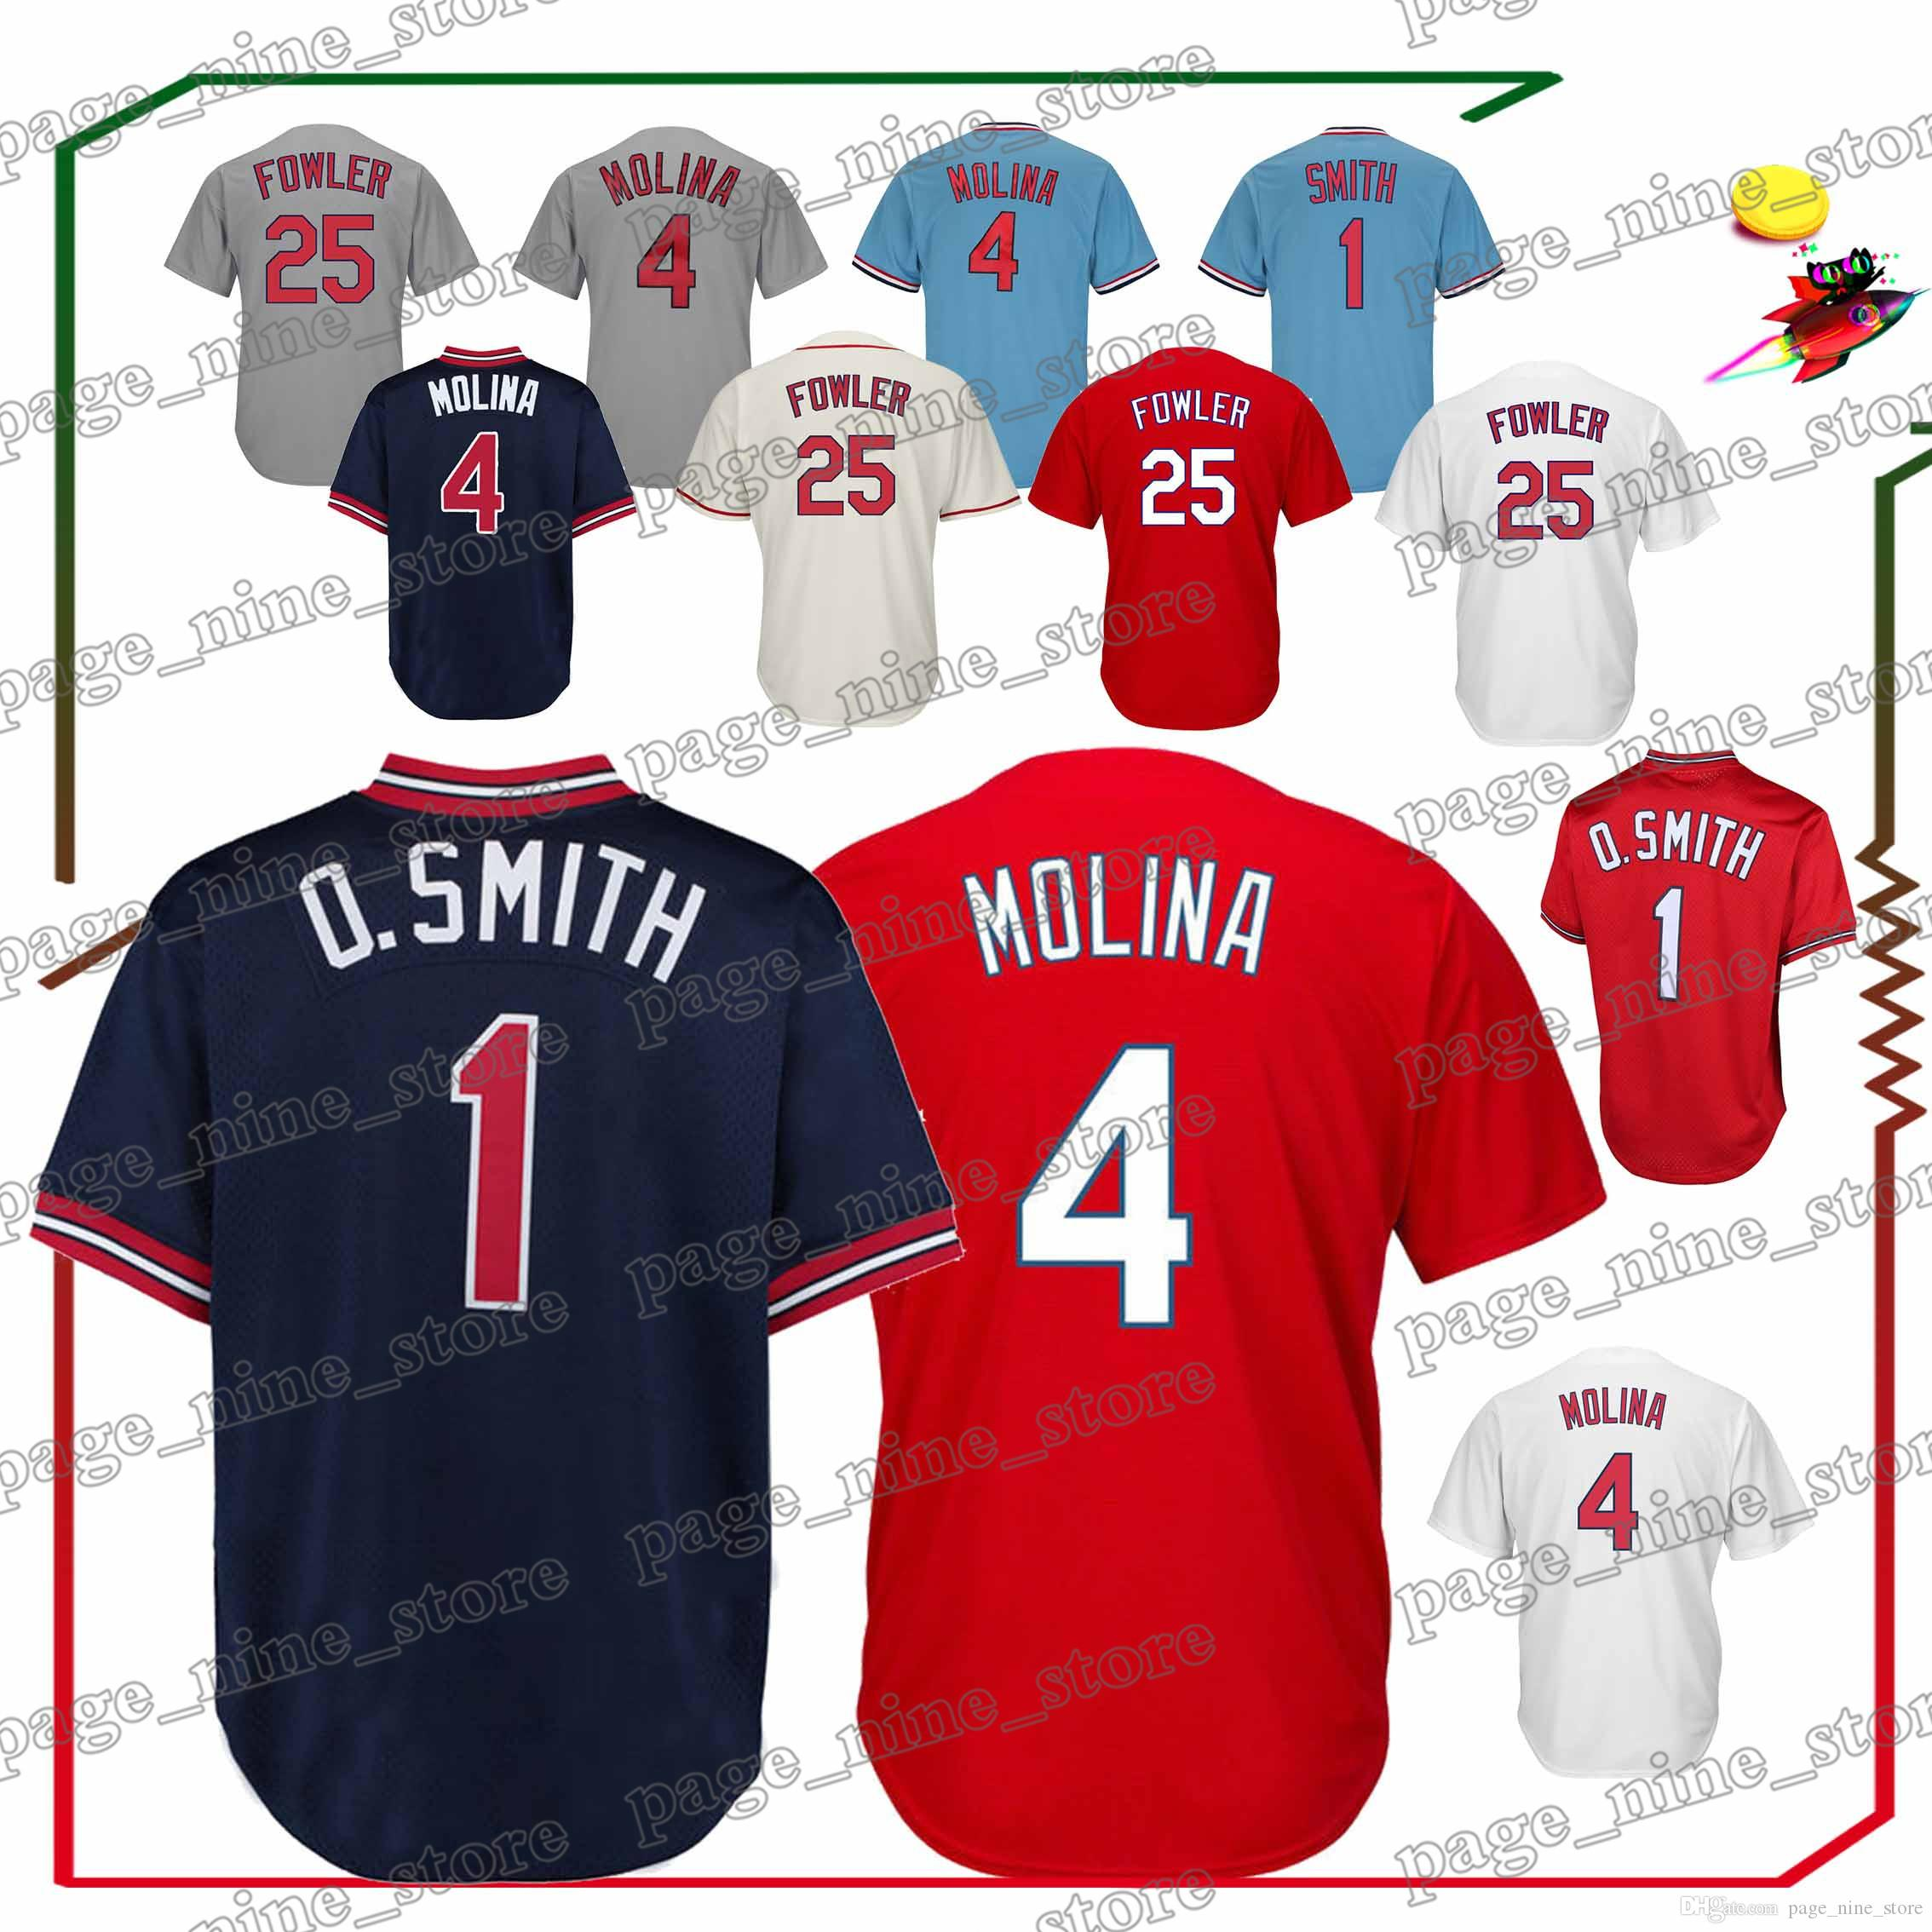 5966db6826d8 2019 St. Louis Cardinals Baseball Jerseys 4 Yadier Molina 25 Dexter Fowler  Hot Sale High Quality Jersey Sportswear From Page nine store